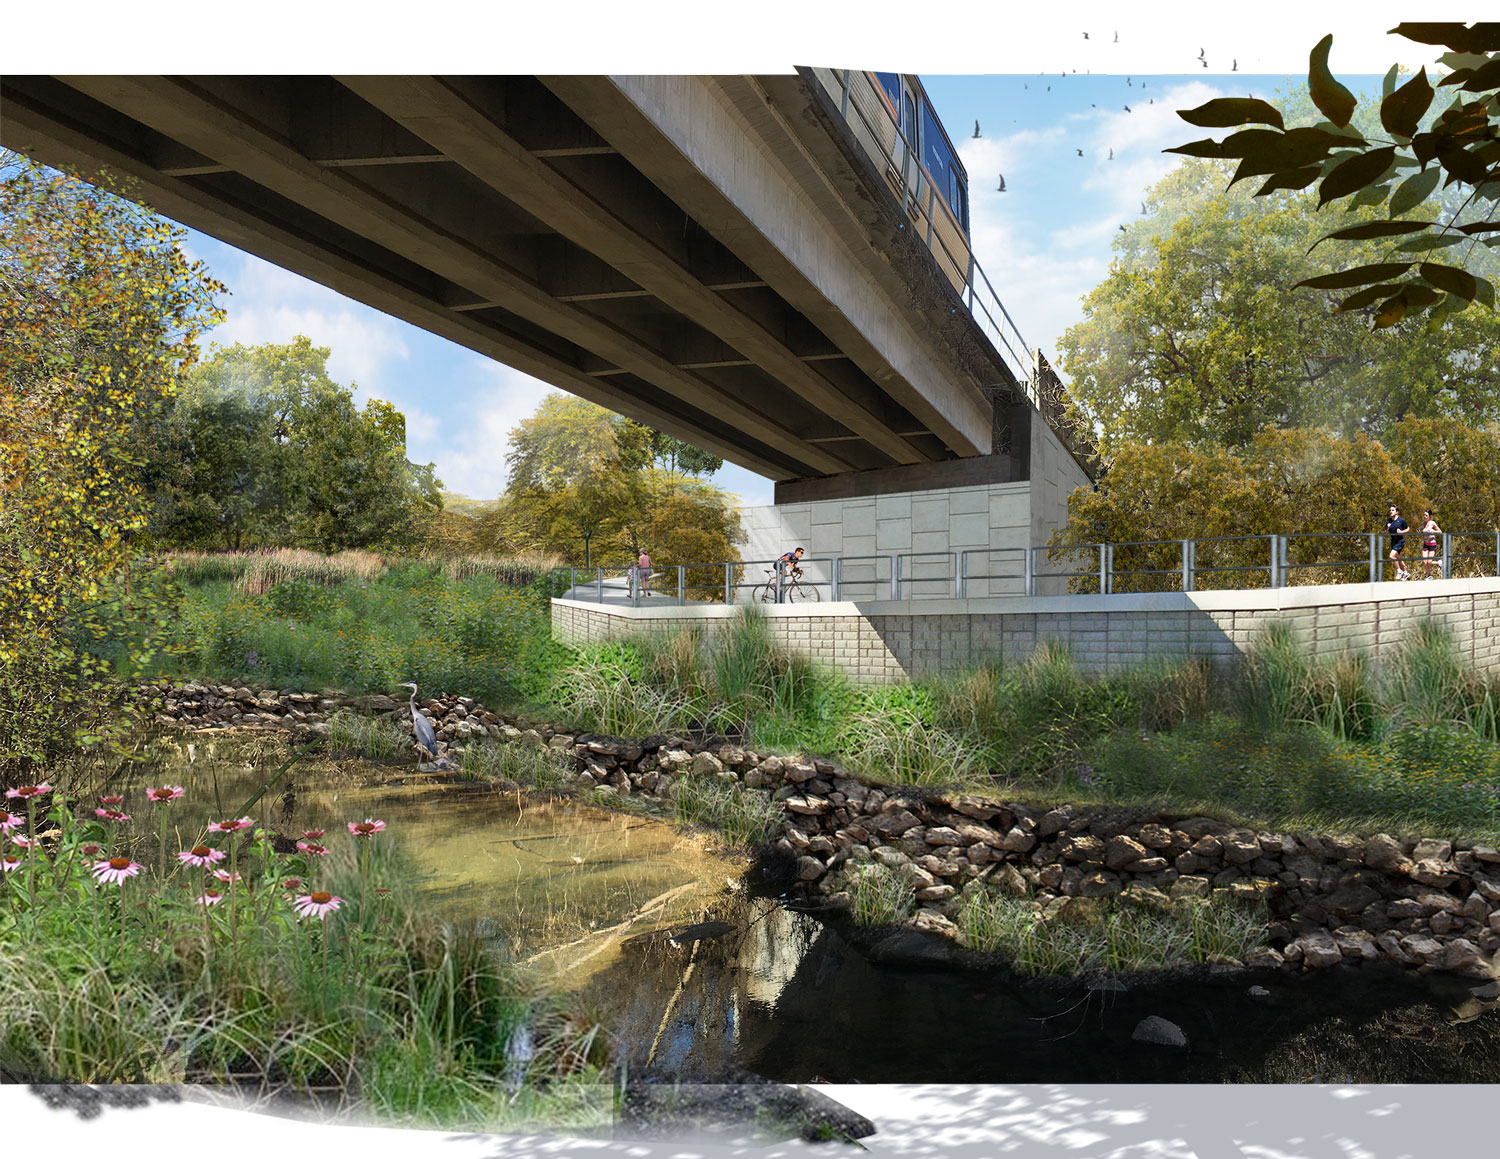 Proposed retaining structure to allow trail to pass seamlessly under the MARTA bridge